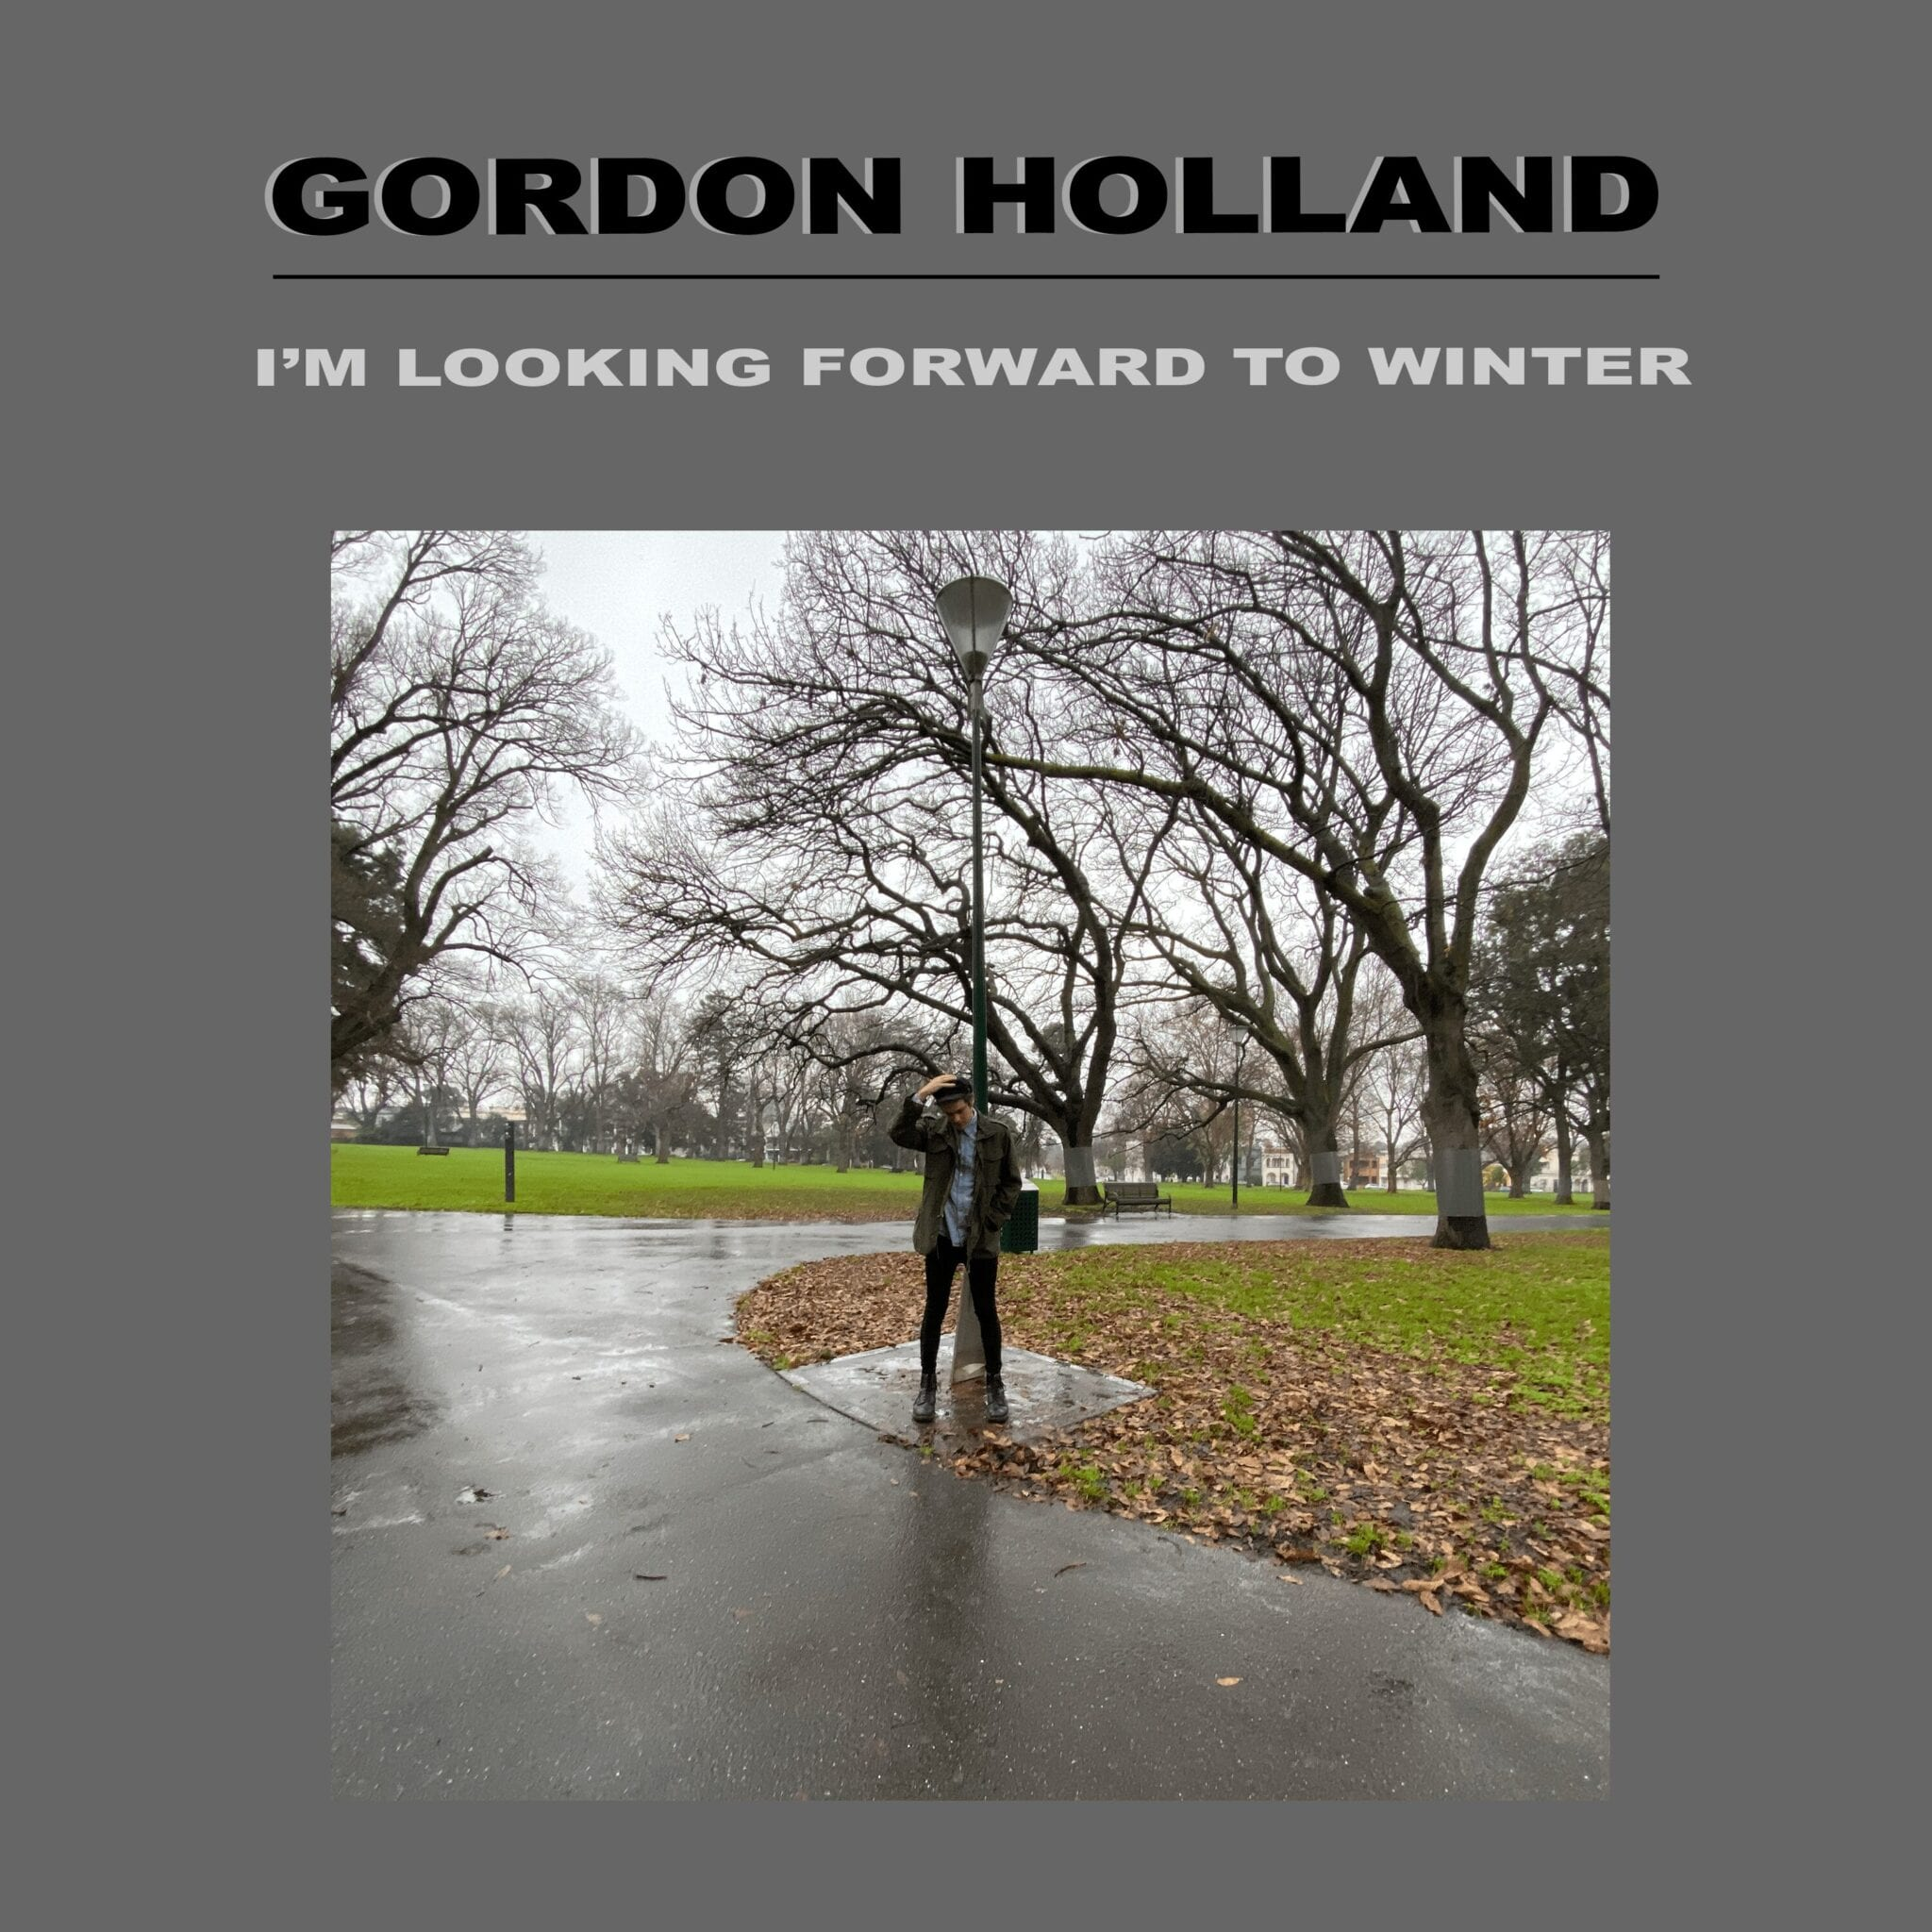 Look Forward To Winter with New Indie Music from Gordon Holland